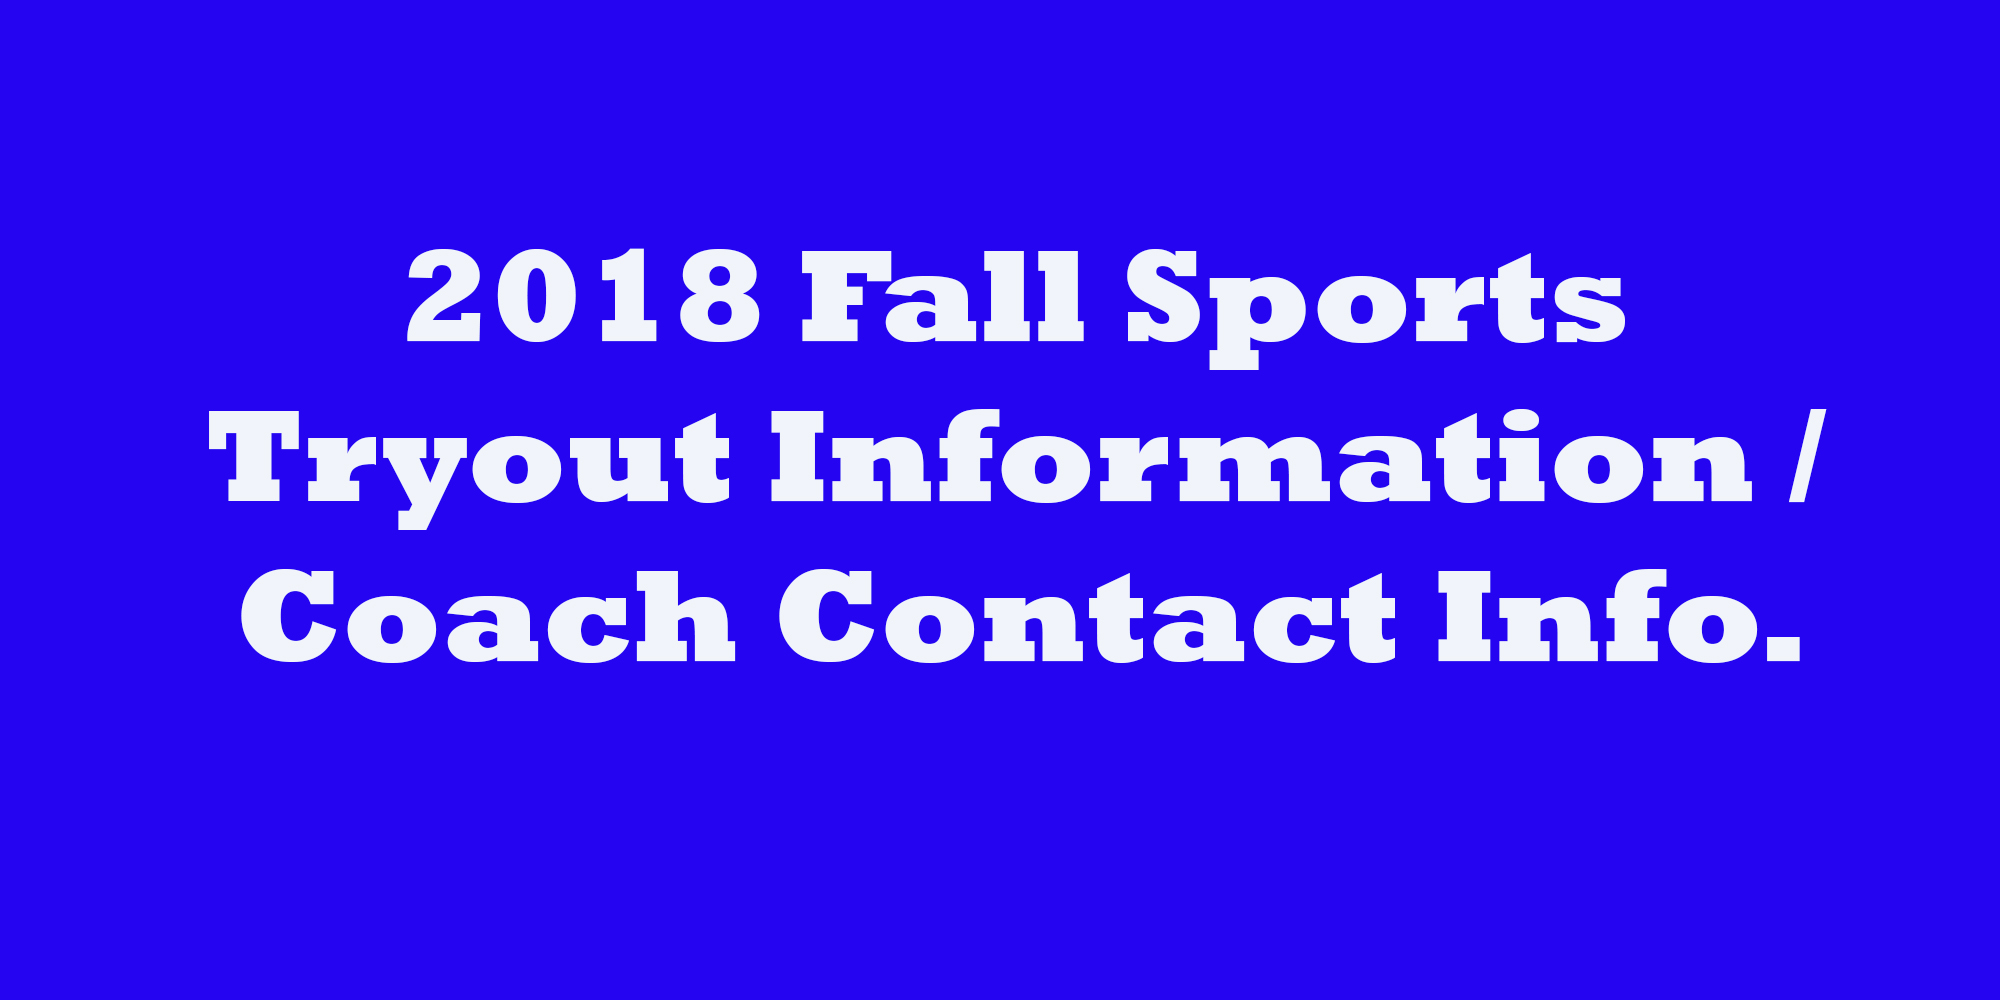 Updated Fall Sports Tryout Information:  Starts This Week